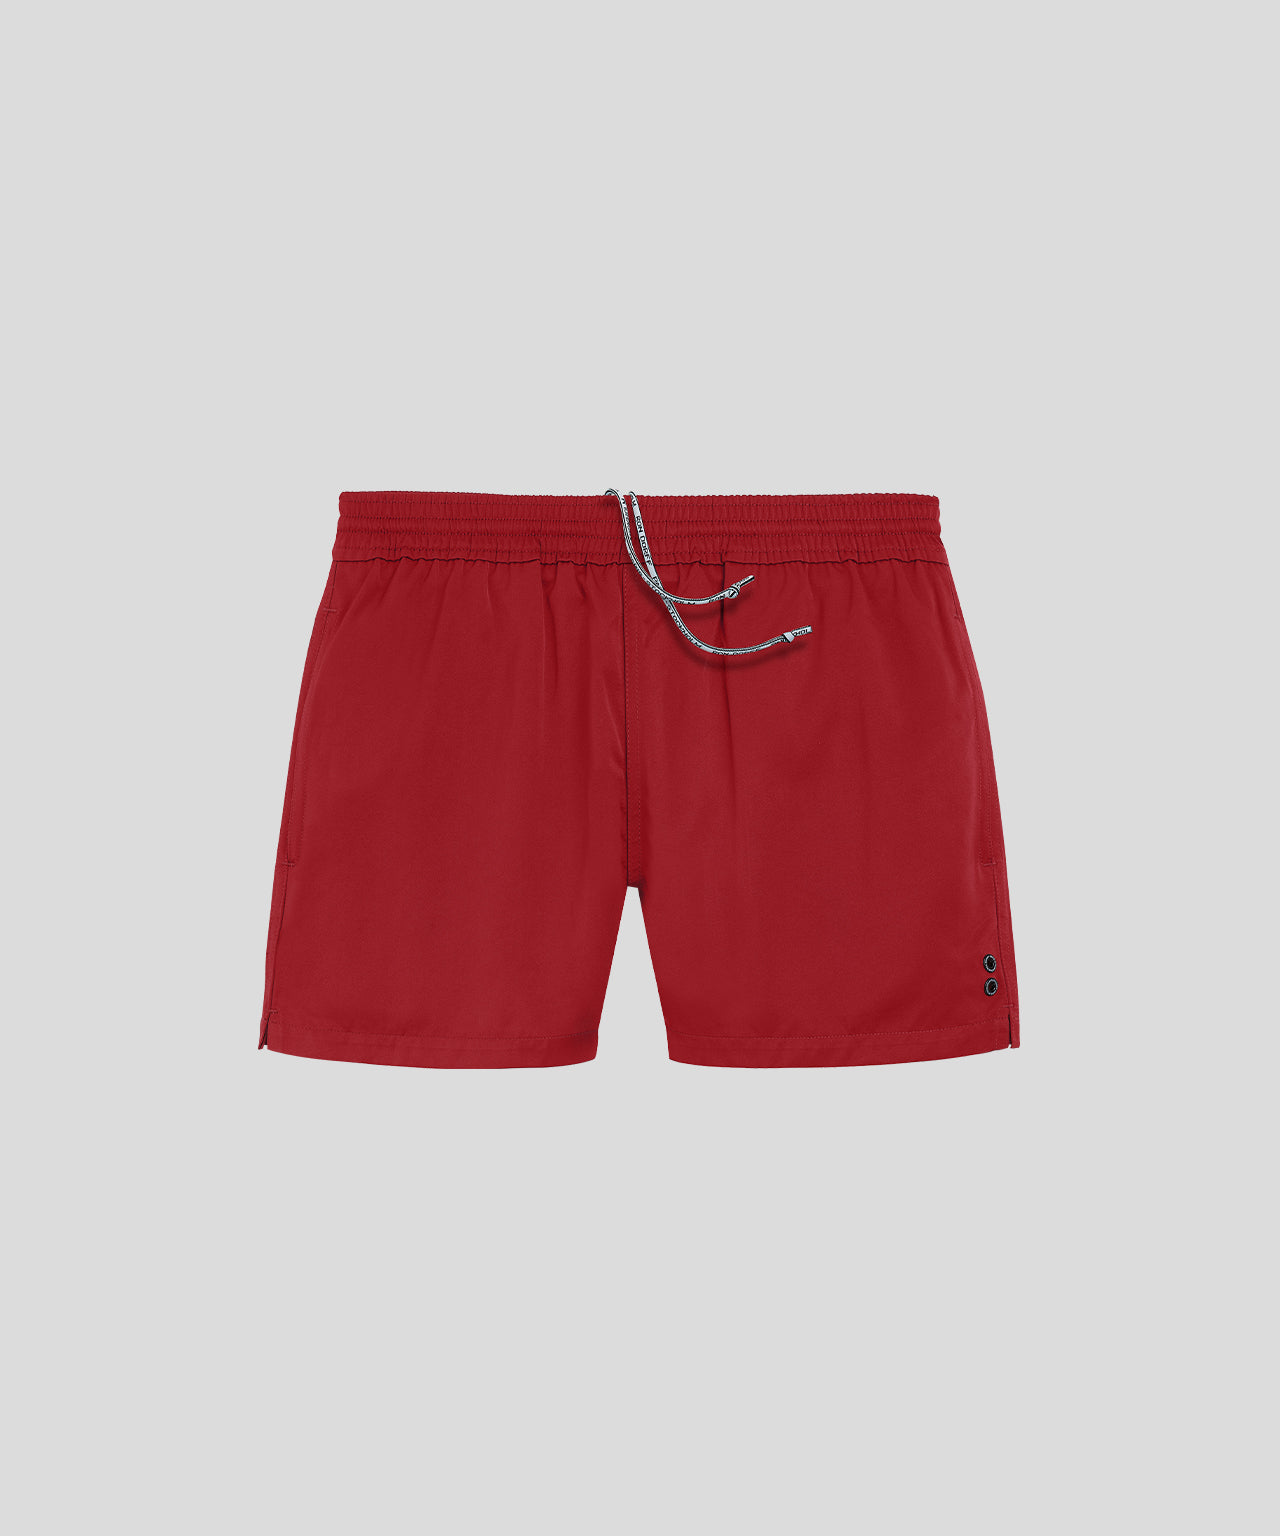 Exerciser Shorts - falun red